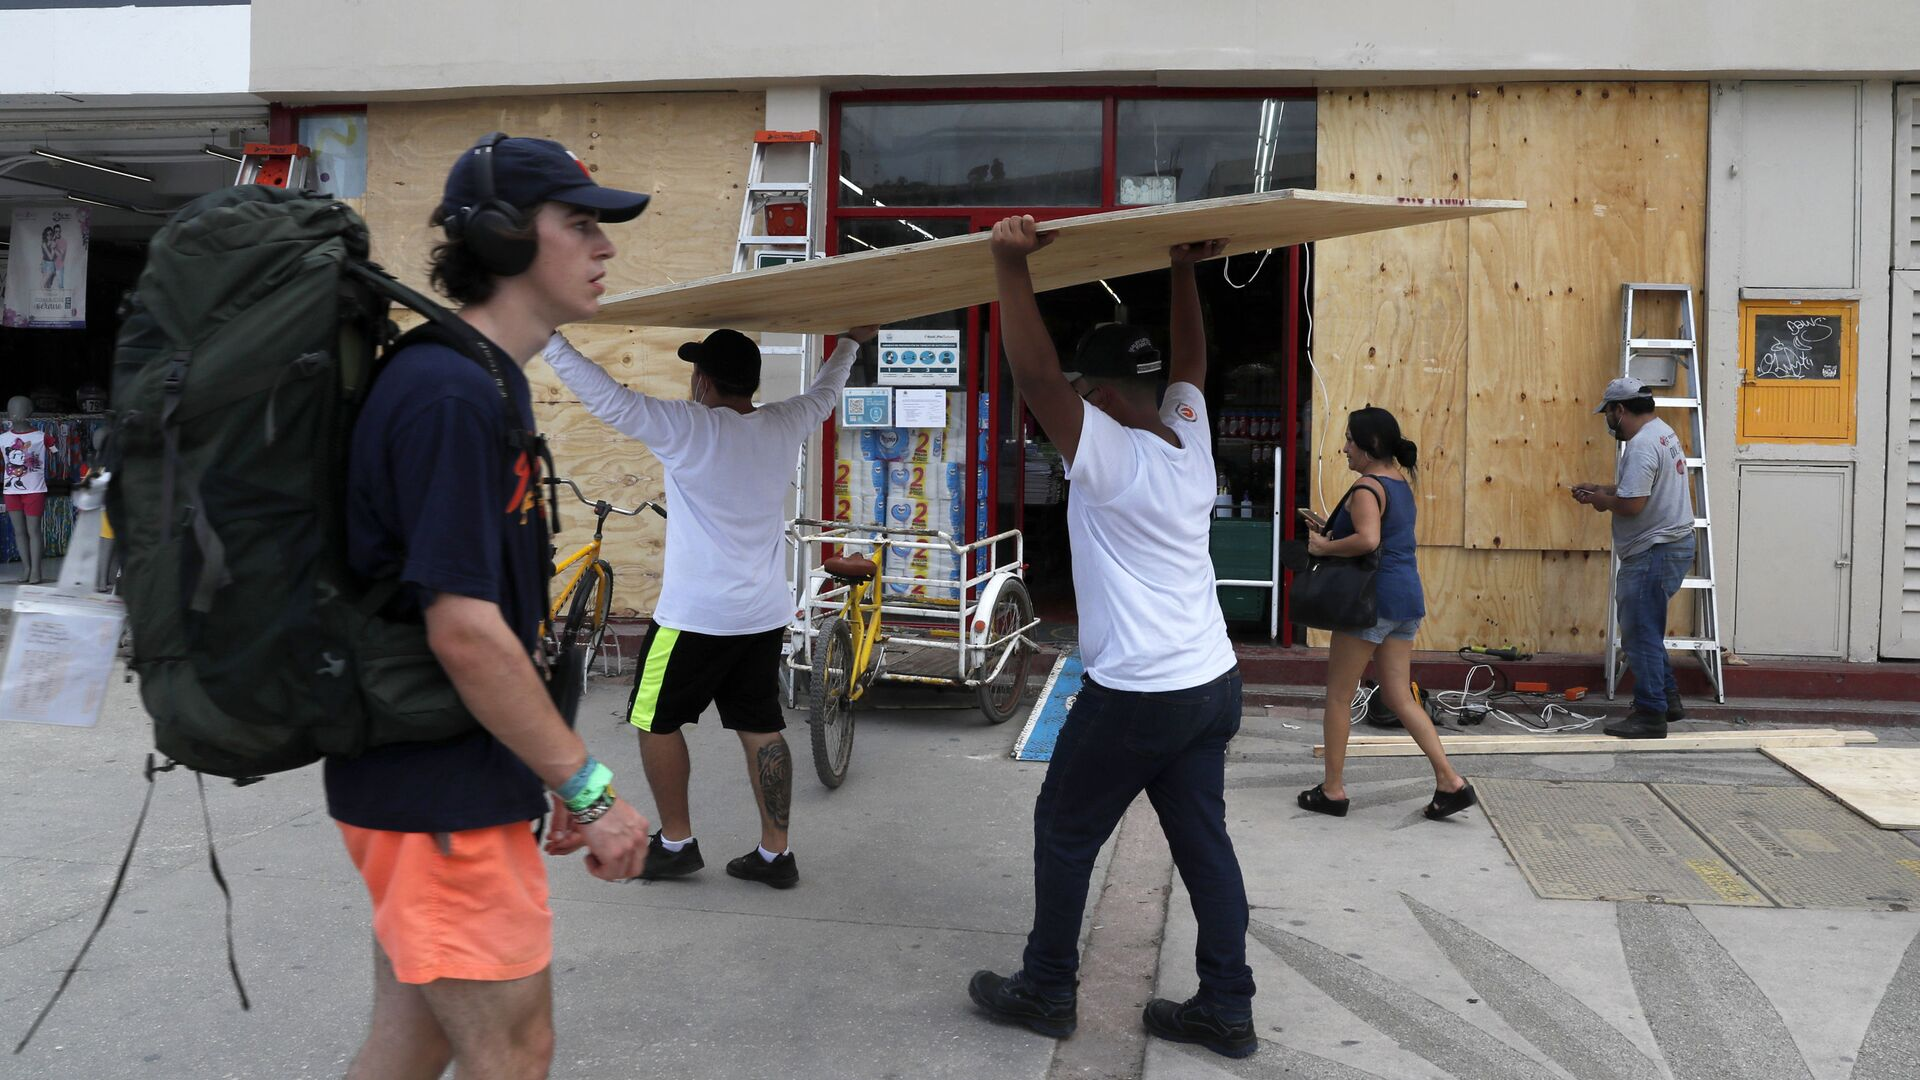 Workers cover shop windows with plywood in Tulum, Quintana Roo State, Mexico, Wednesday, Aug. 18, 2021. Residents and tourists along the Caribbean coast began making preparations for Grace, a storm that drenched Haiti and Jamaica and is now forecast to hit Mexico´s Yucatan peninsula like a hurricane early Thursday morning. - Sputnik International, 1920, 19.08.2021